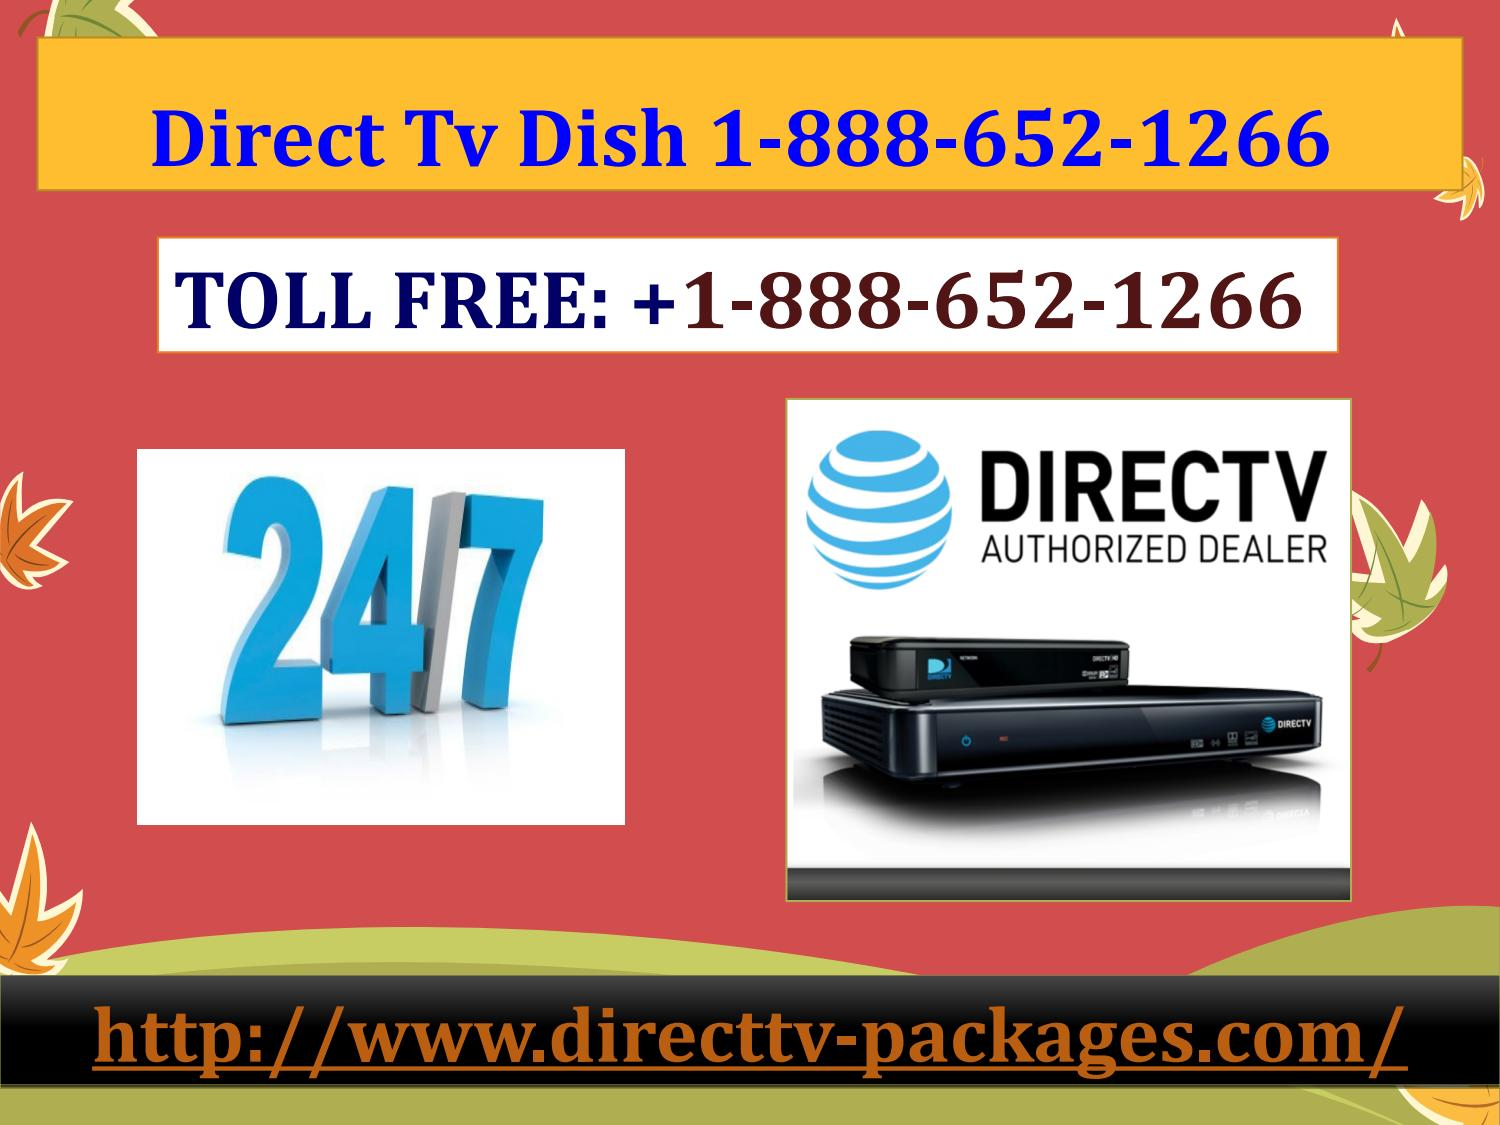 bundle direct tv dish 1 888 652 1266 at t internet when you call by alaska6491 issuu. Black Bedroom Furniture Sets. Home Design Ideas